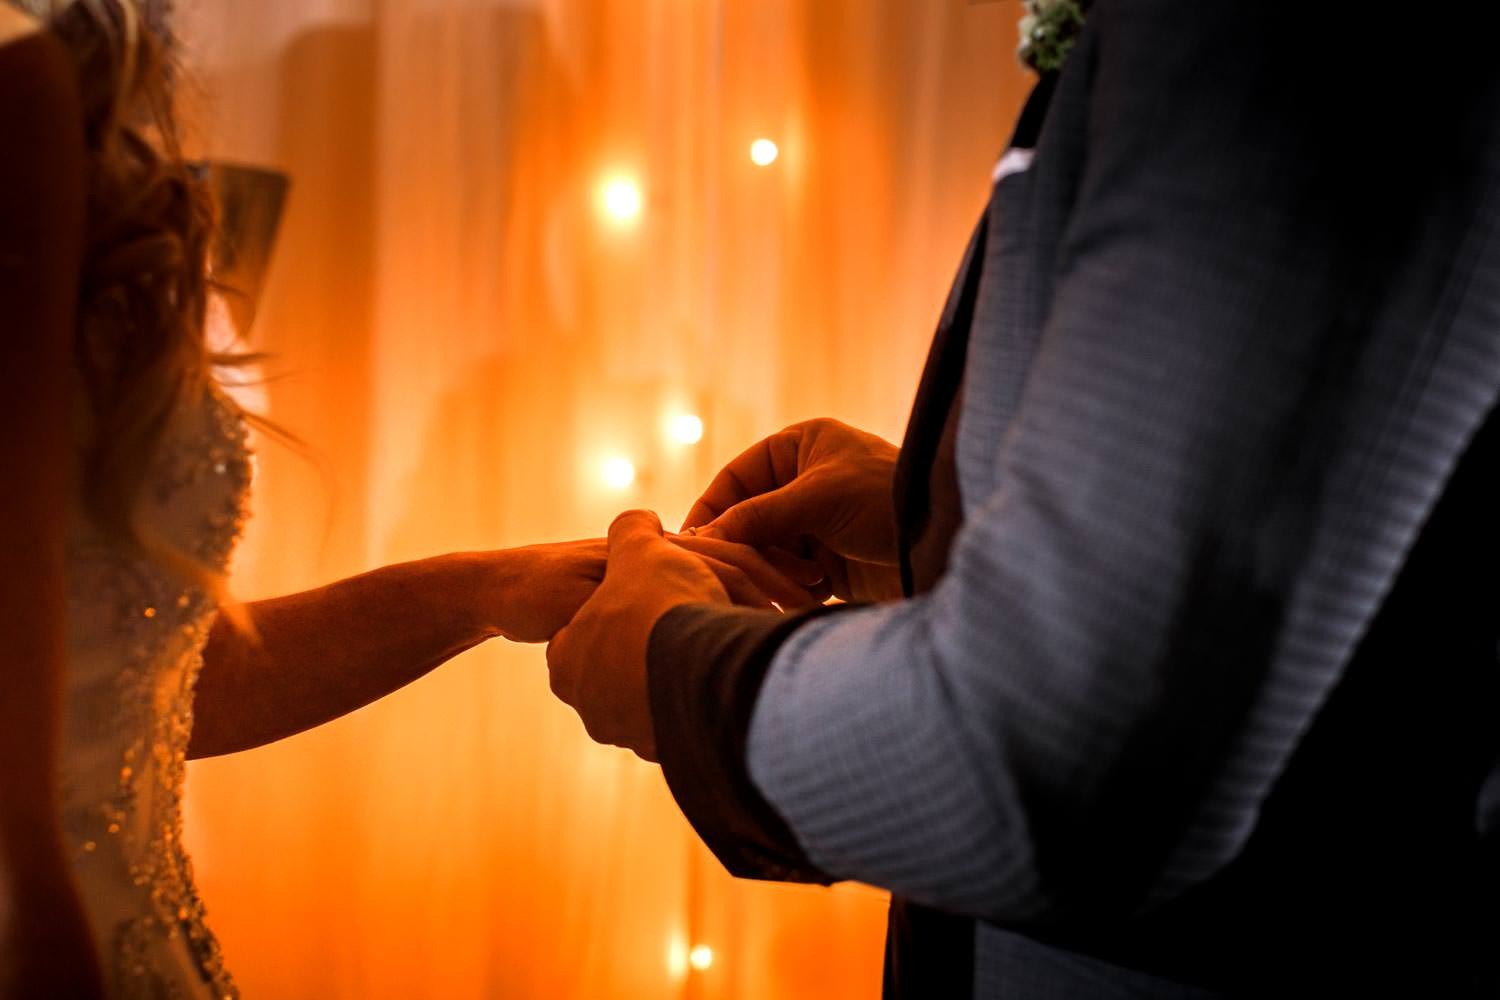 groom places ring on hand during wedding ceremony